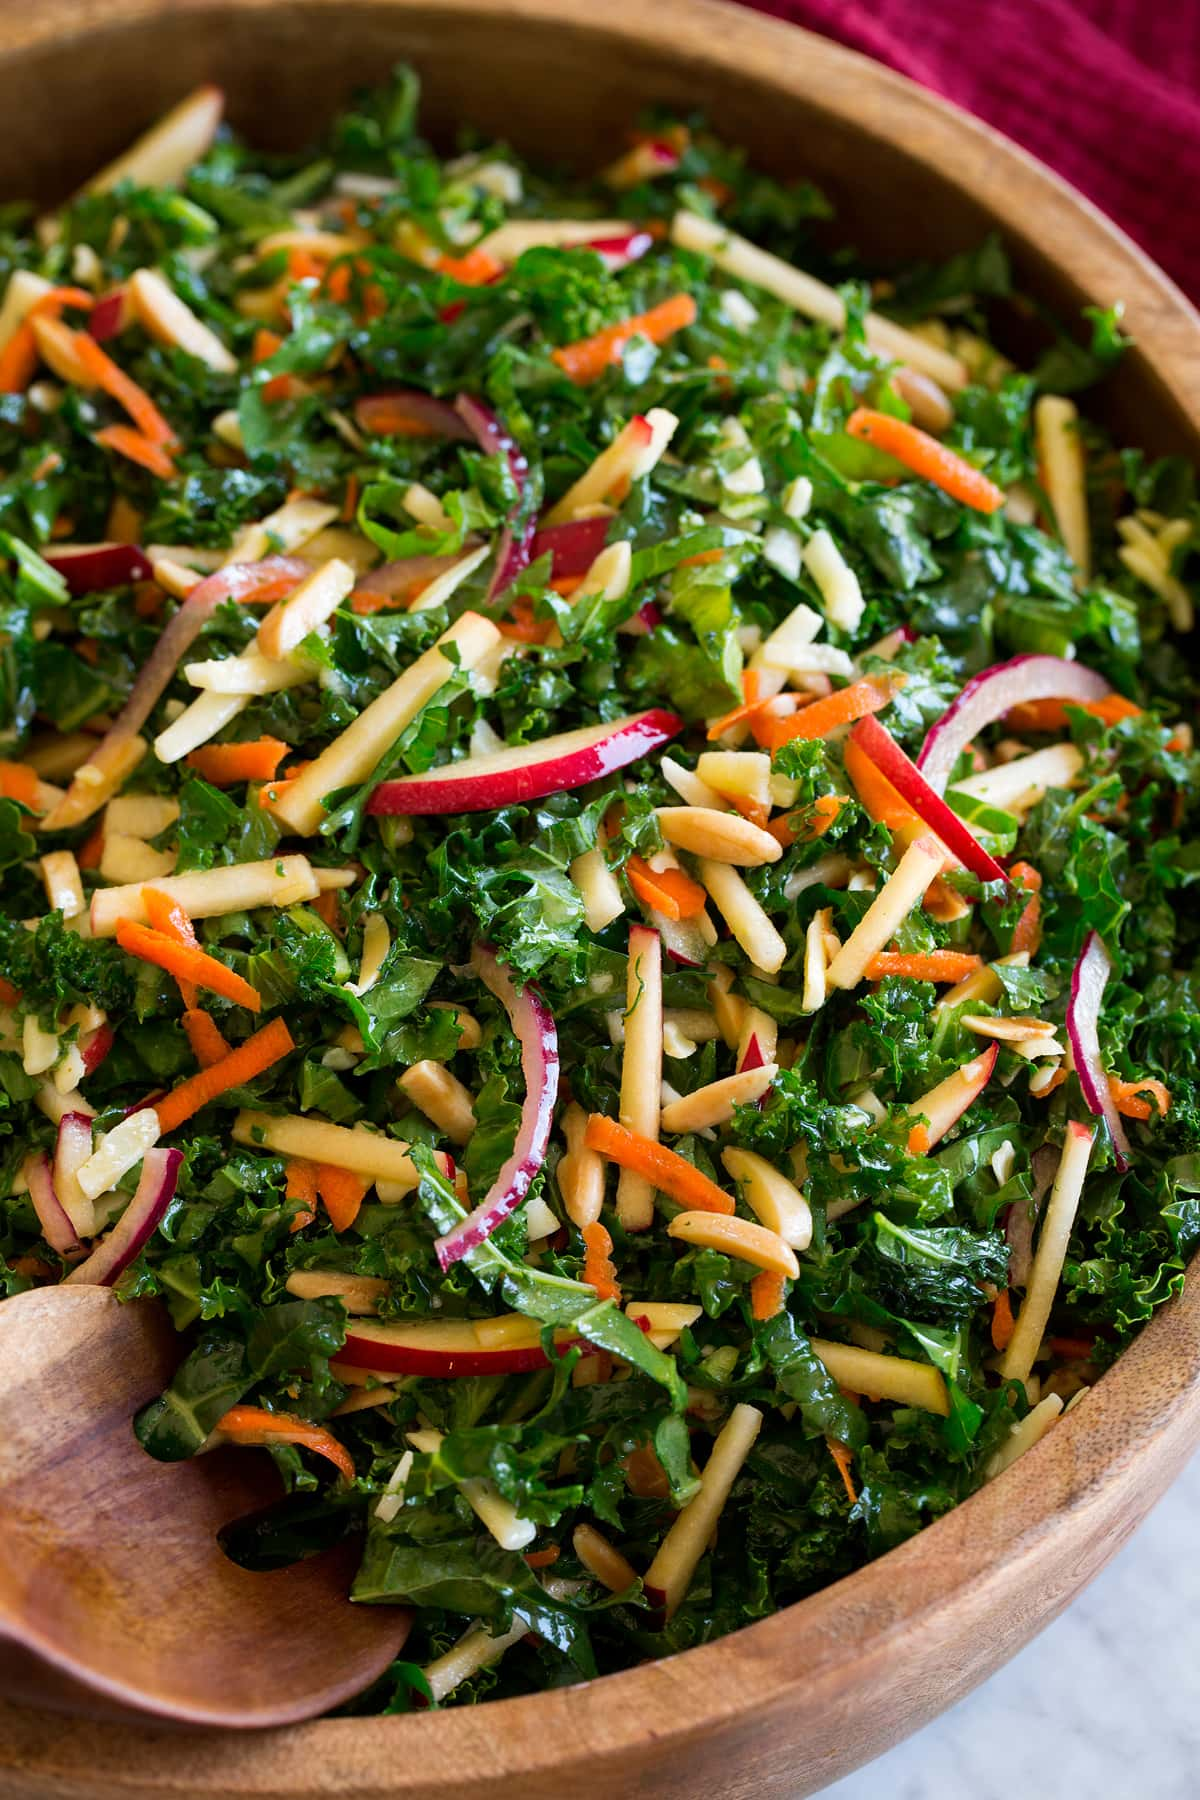 Photo: Shredded kale salad shown close up on a bowl.